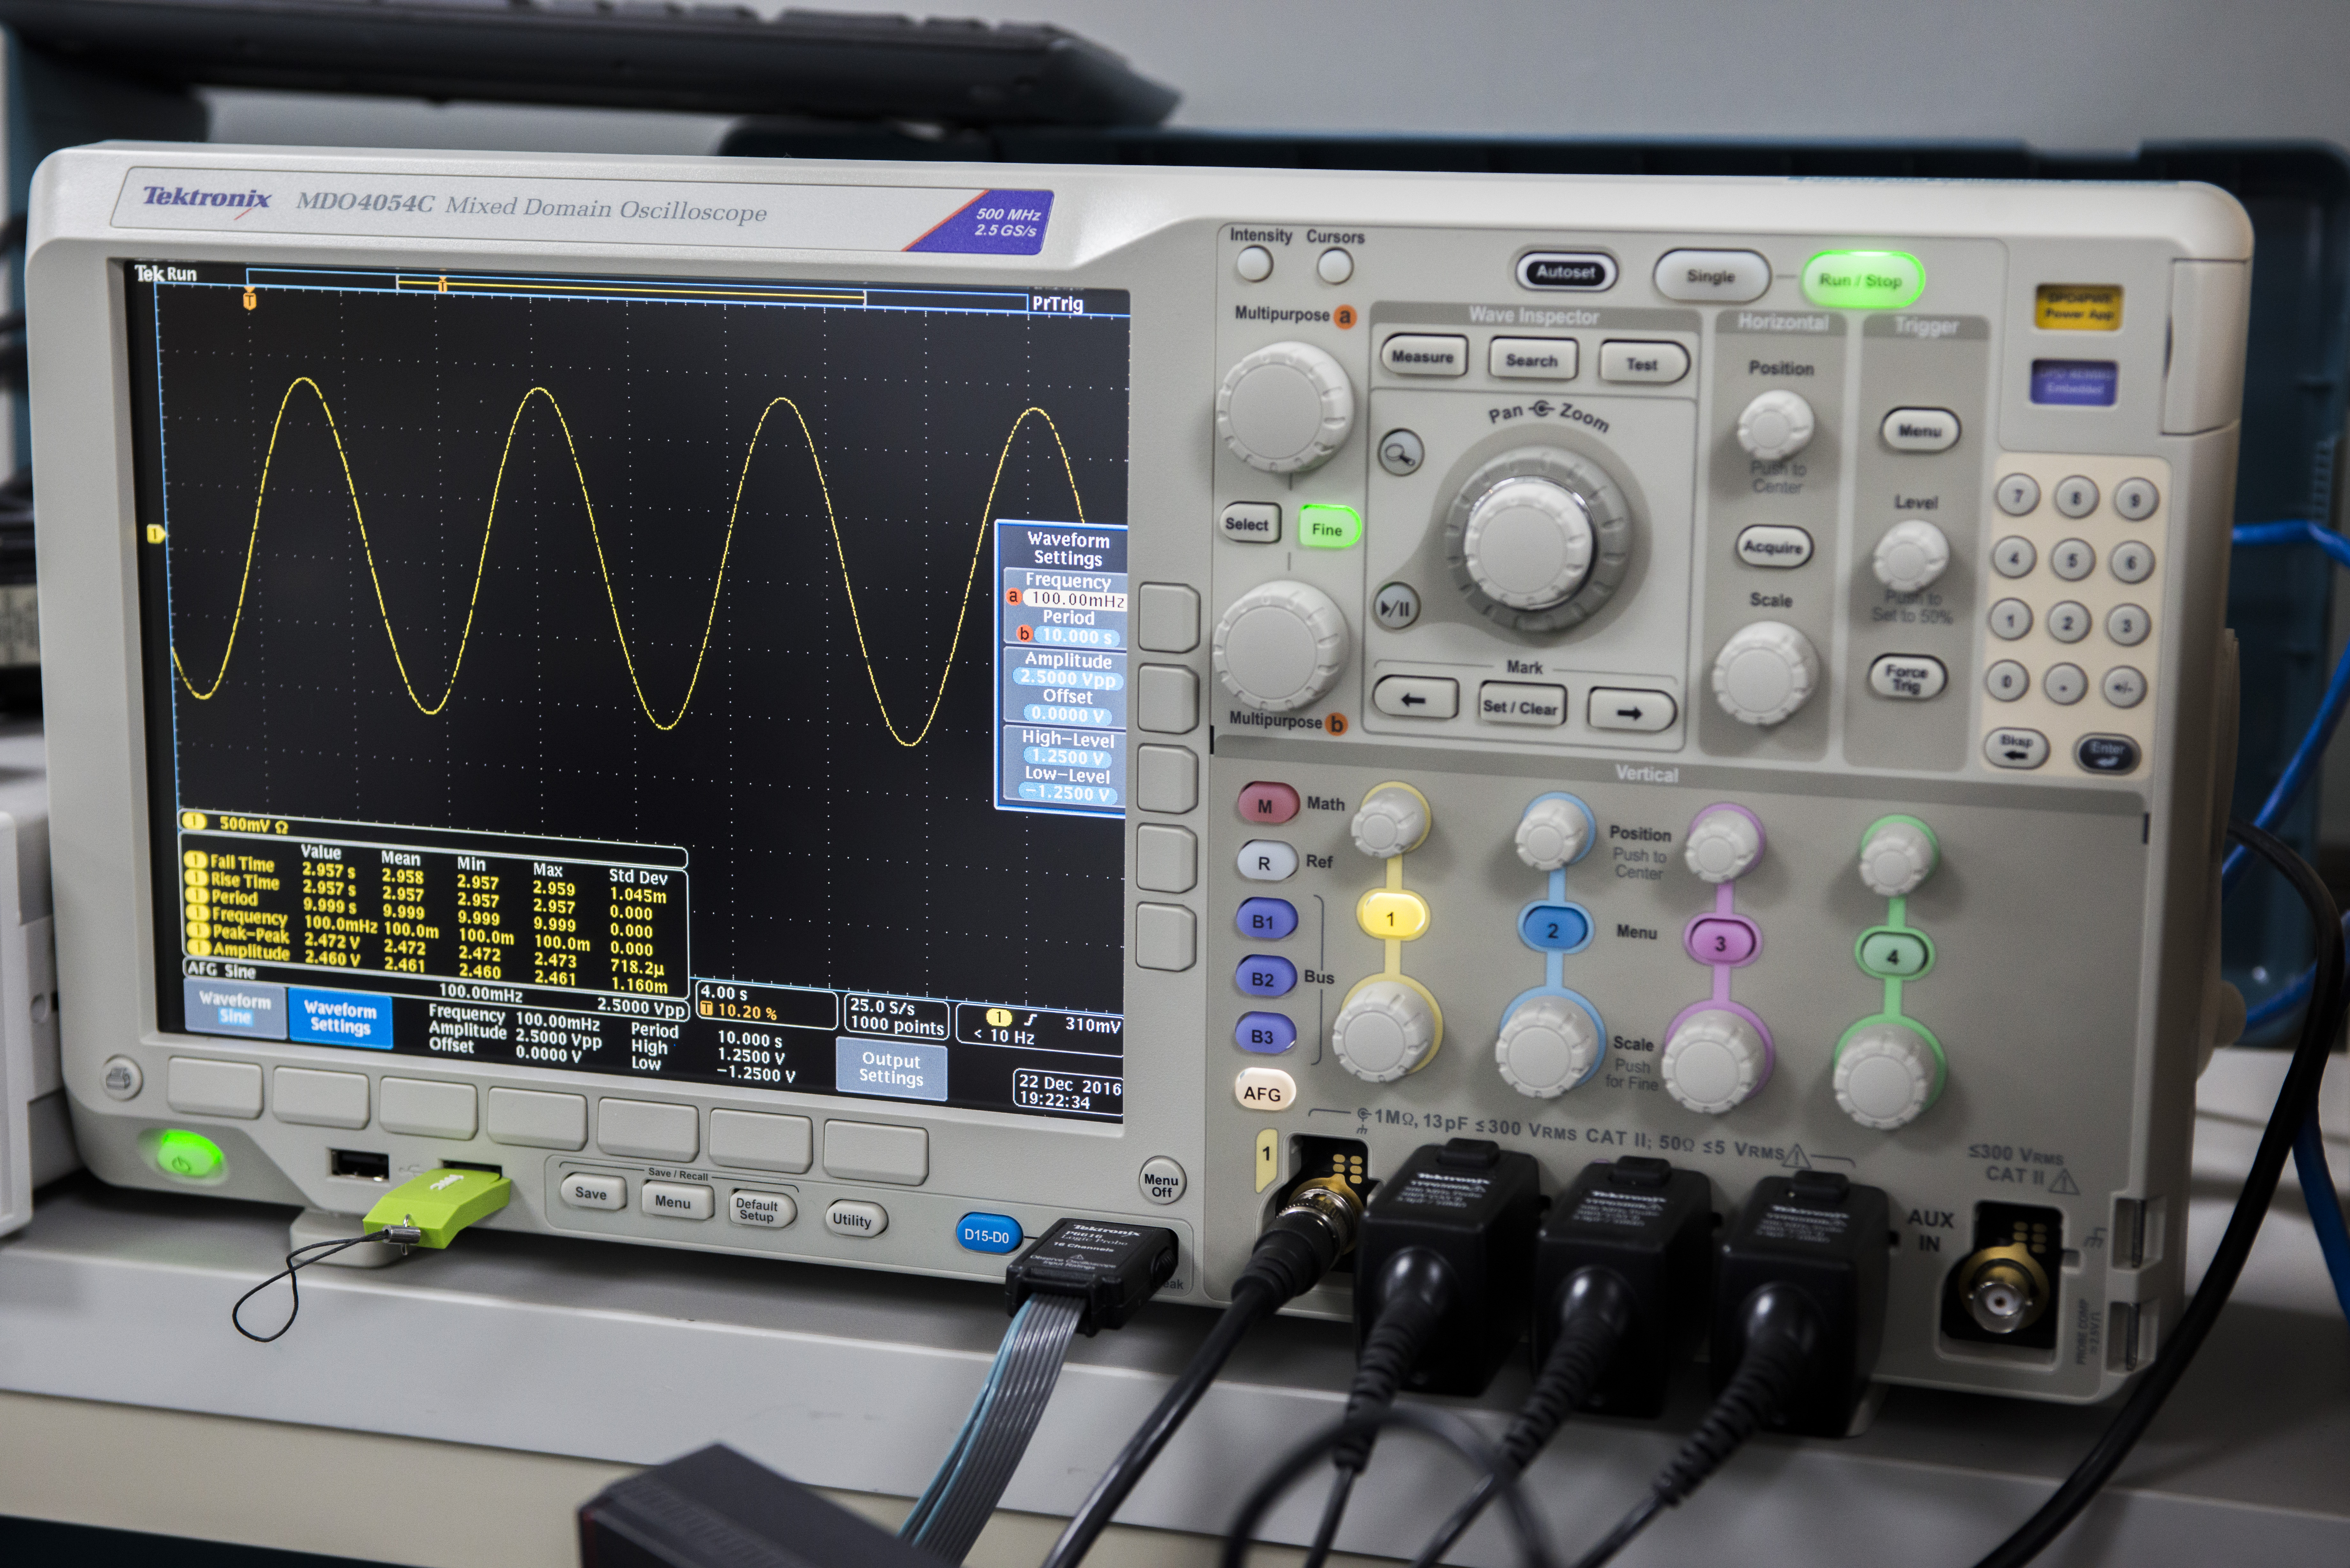 xDevs com | Review of Tektronix MDO4000C mixed domain oscilloscope